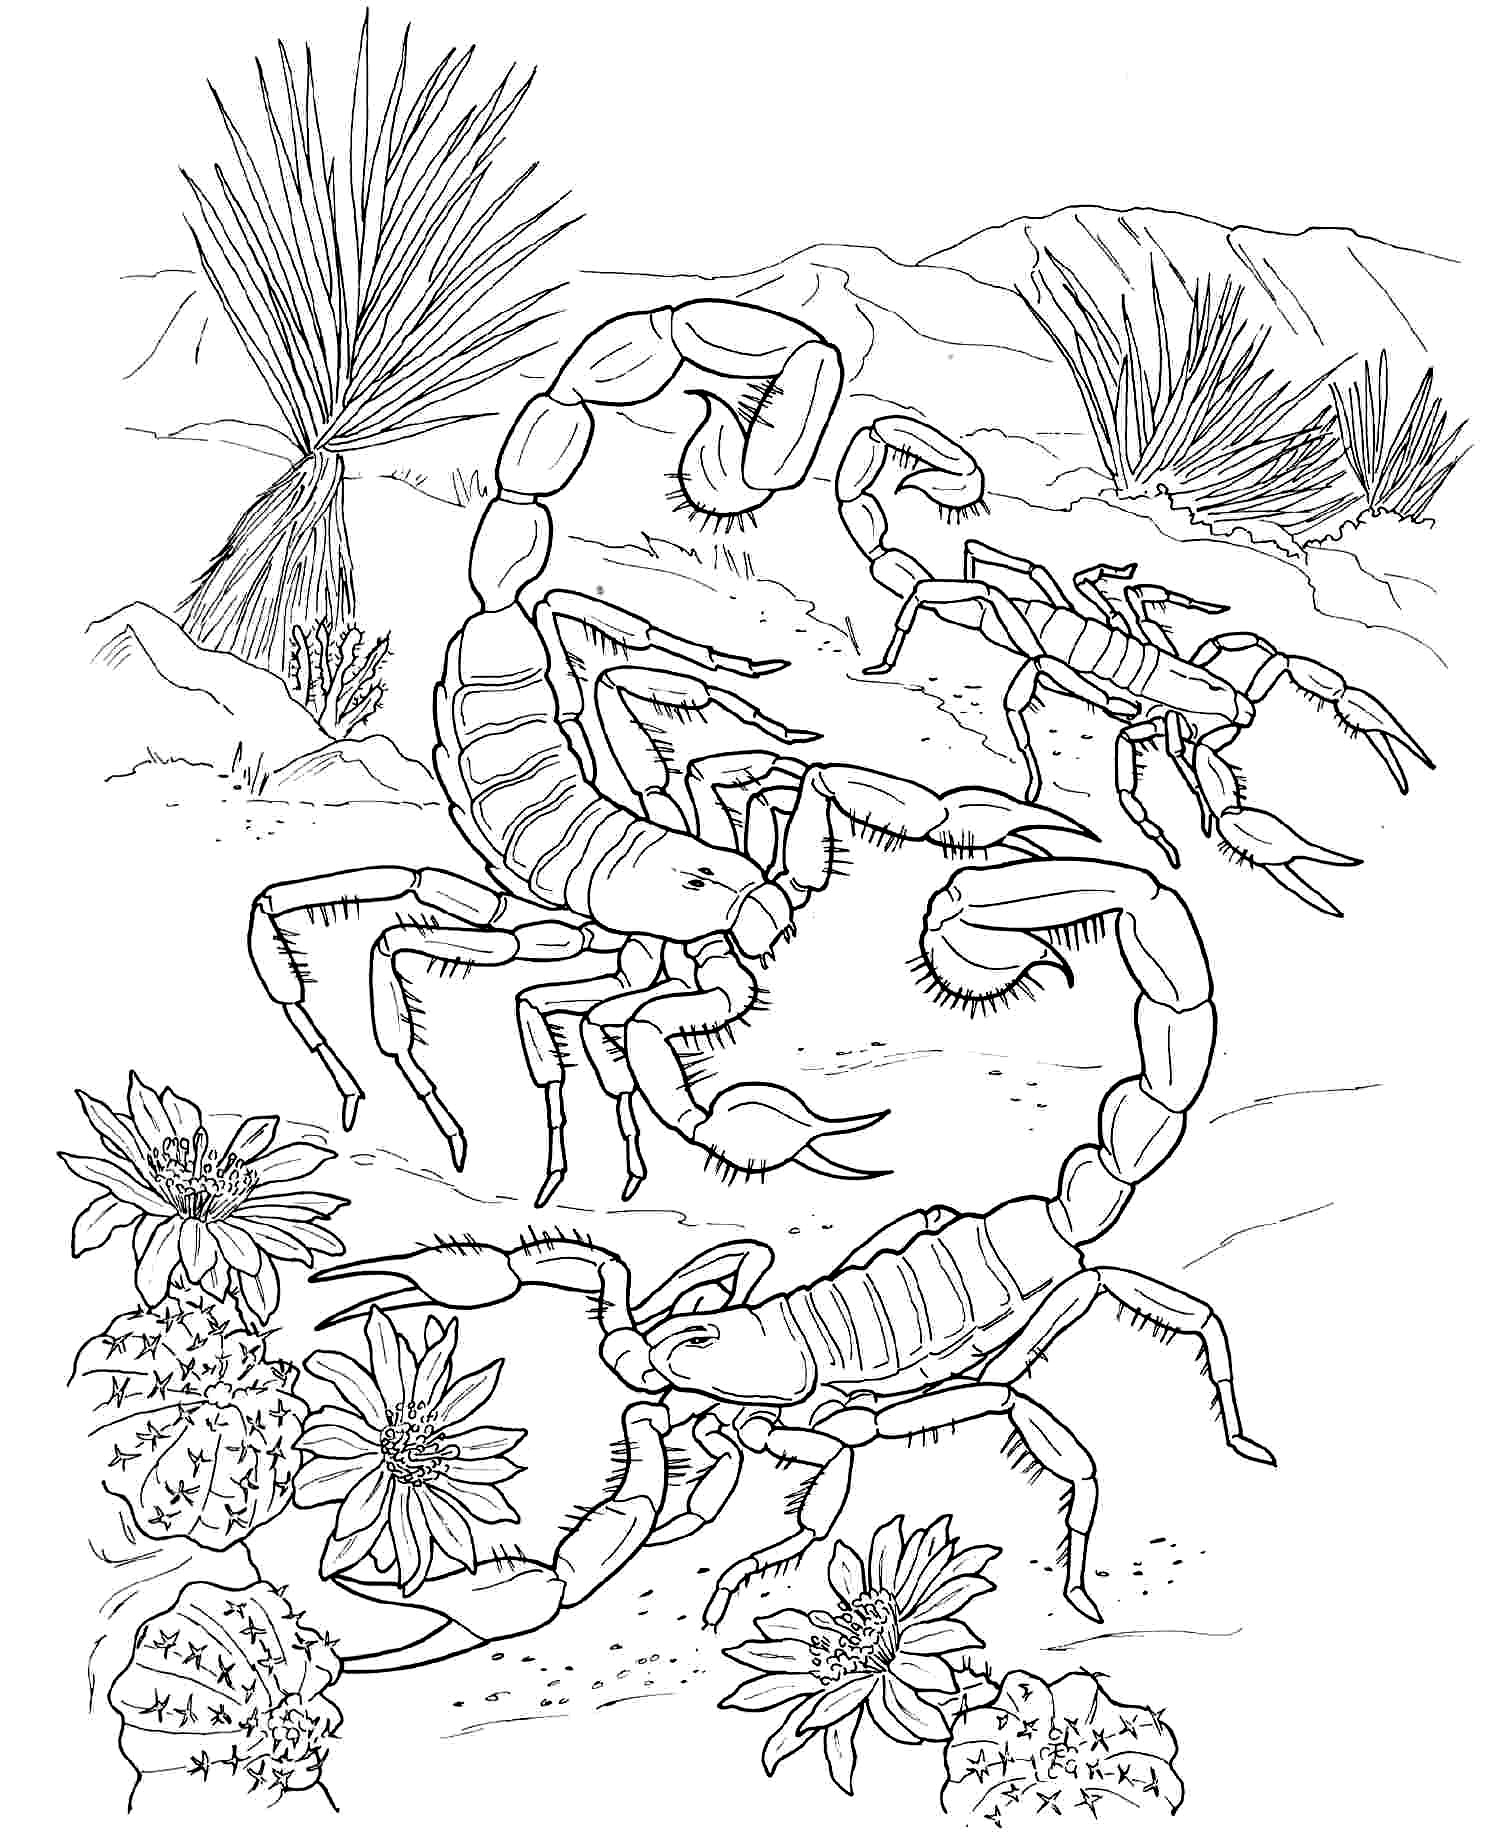 scorpion coloring free printable scorpion coloring pages for kids coloring scorpion 1 2